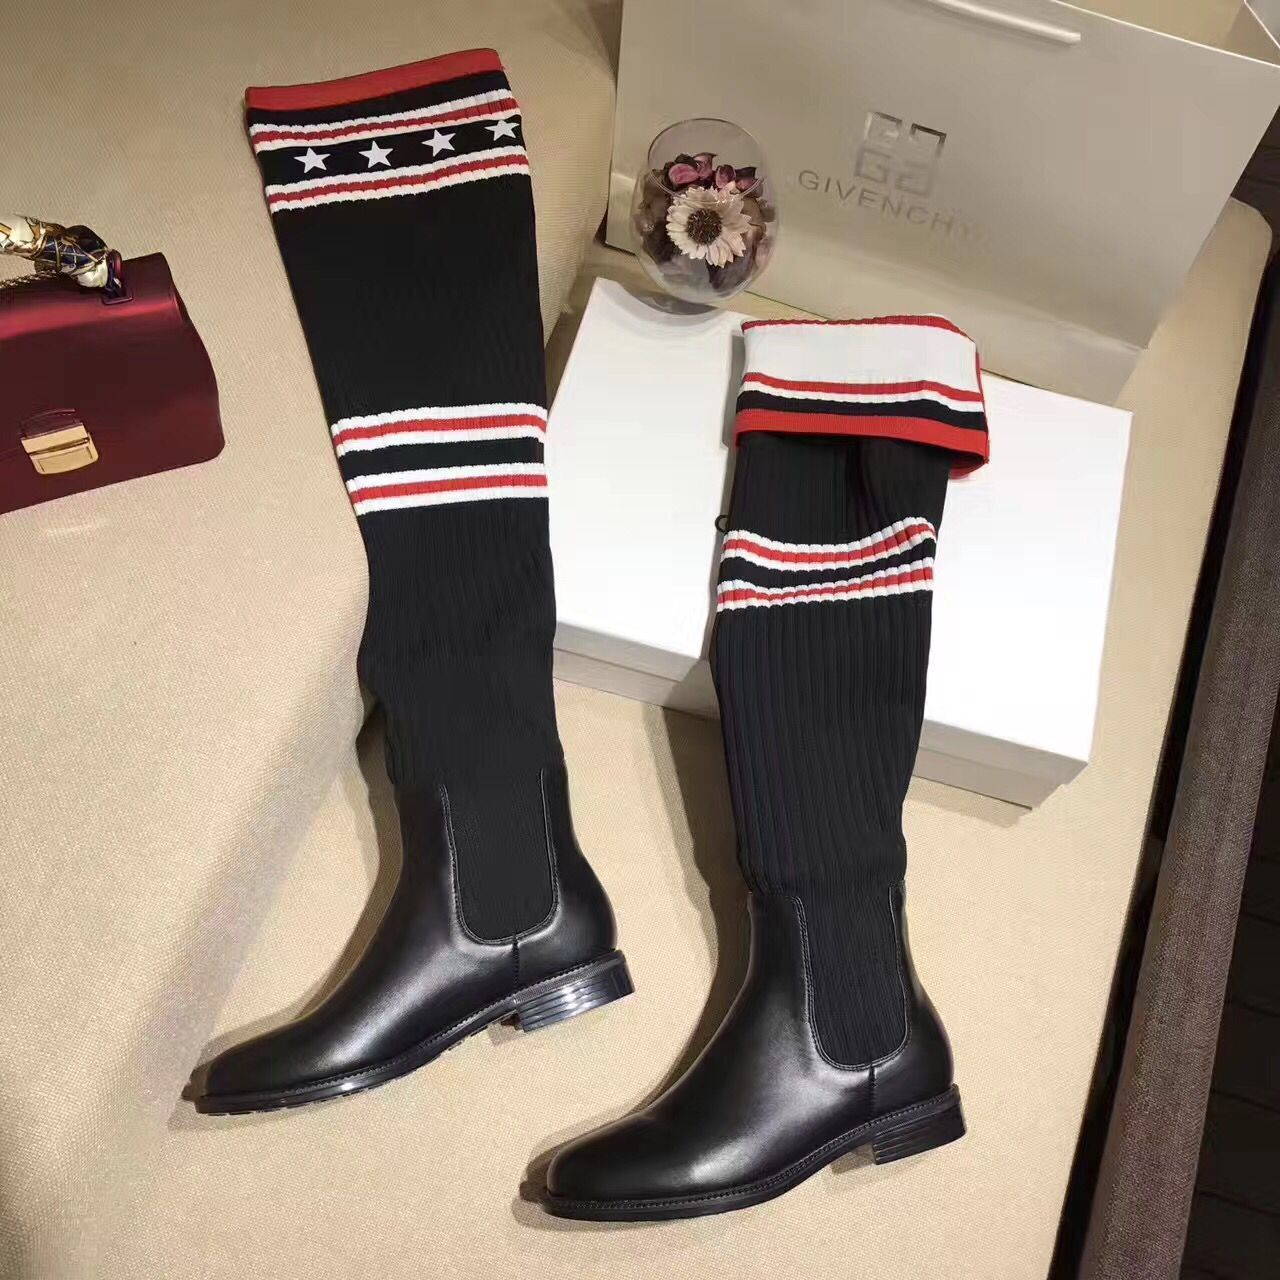 Givenchy Fashion Style Knee Socks Boots 86249 Black